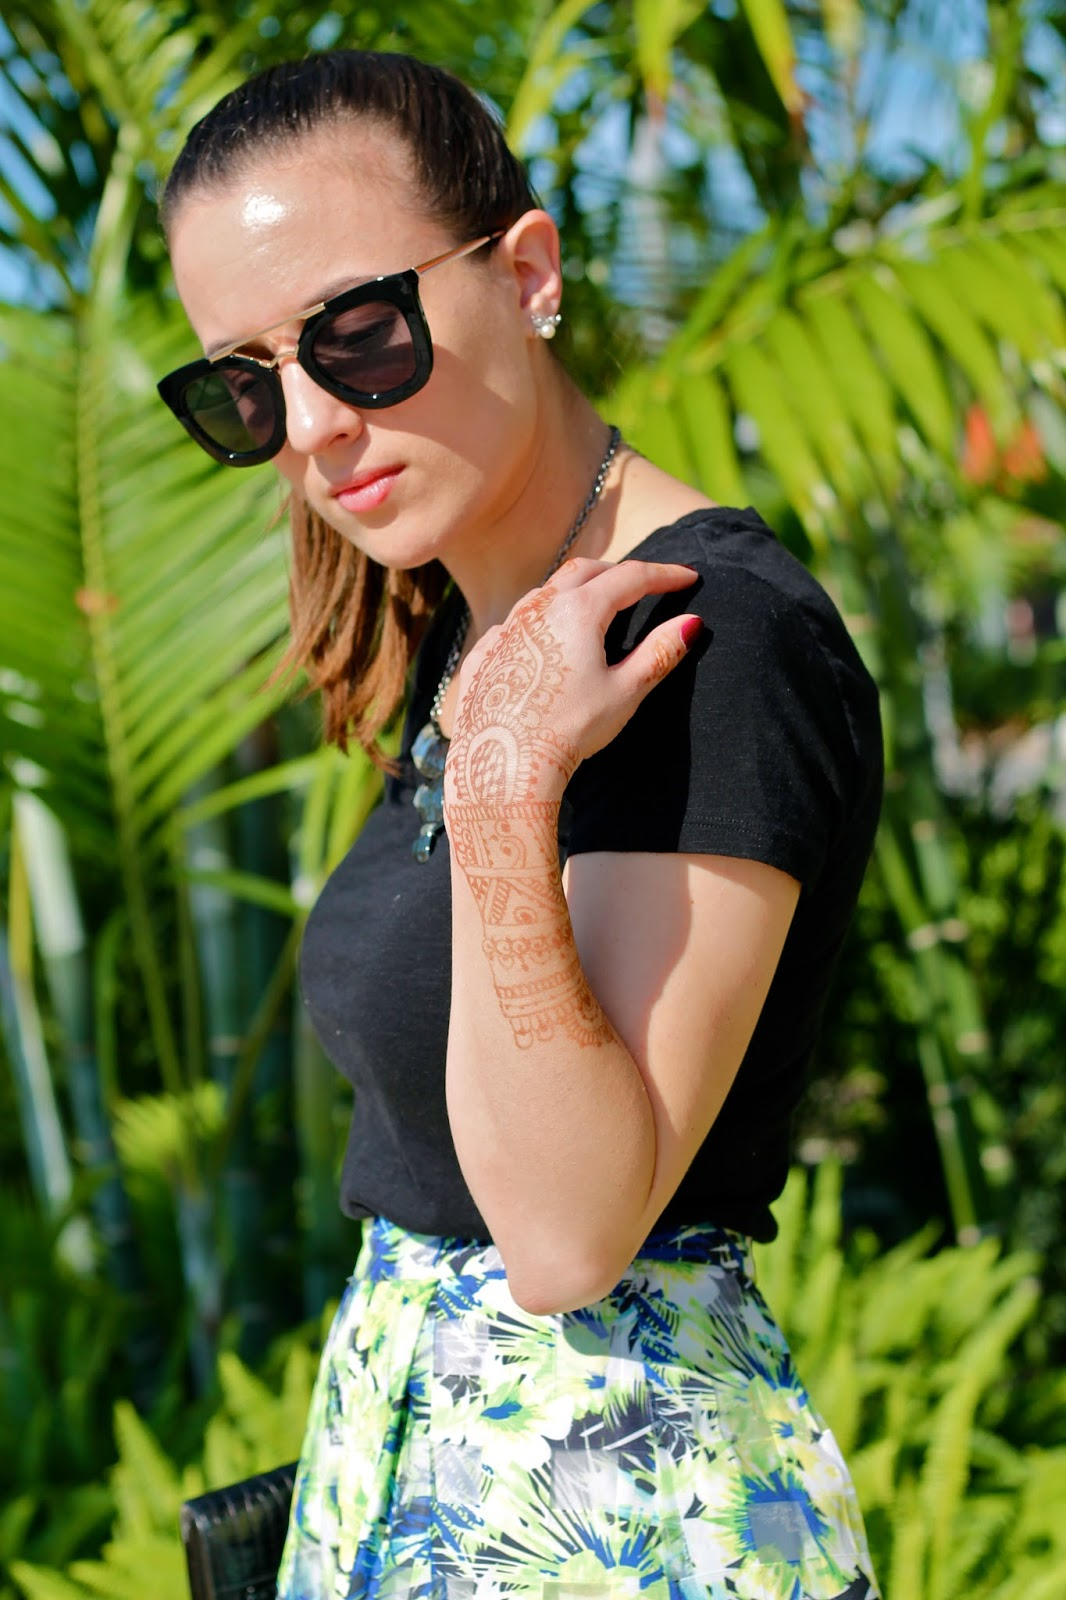 forever 21, Nasty Gal, L Boutique, vintage, The Henna Touch, henna, body art, style blogger, Steve Madden, fashion blogger, outfit ideas, midi skirt, Miami fashion blogger